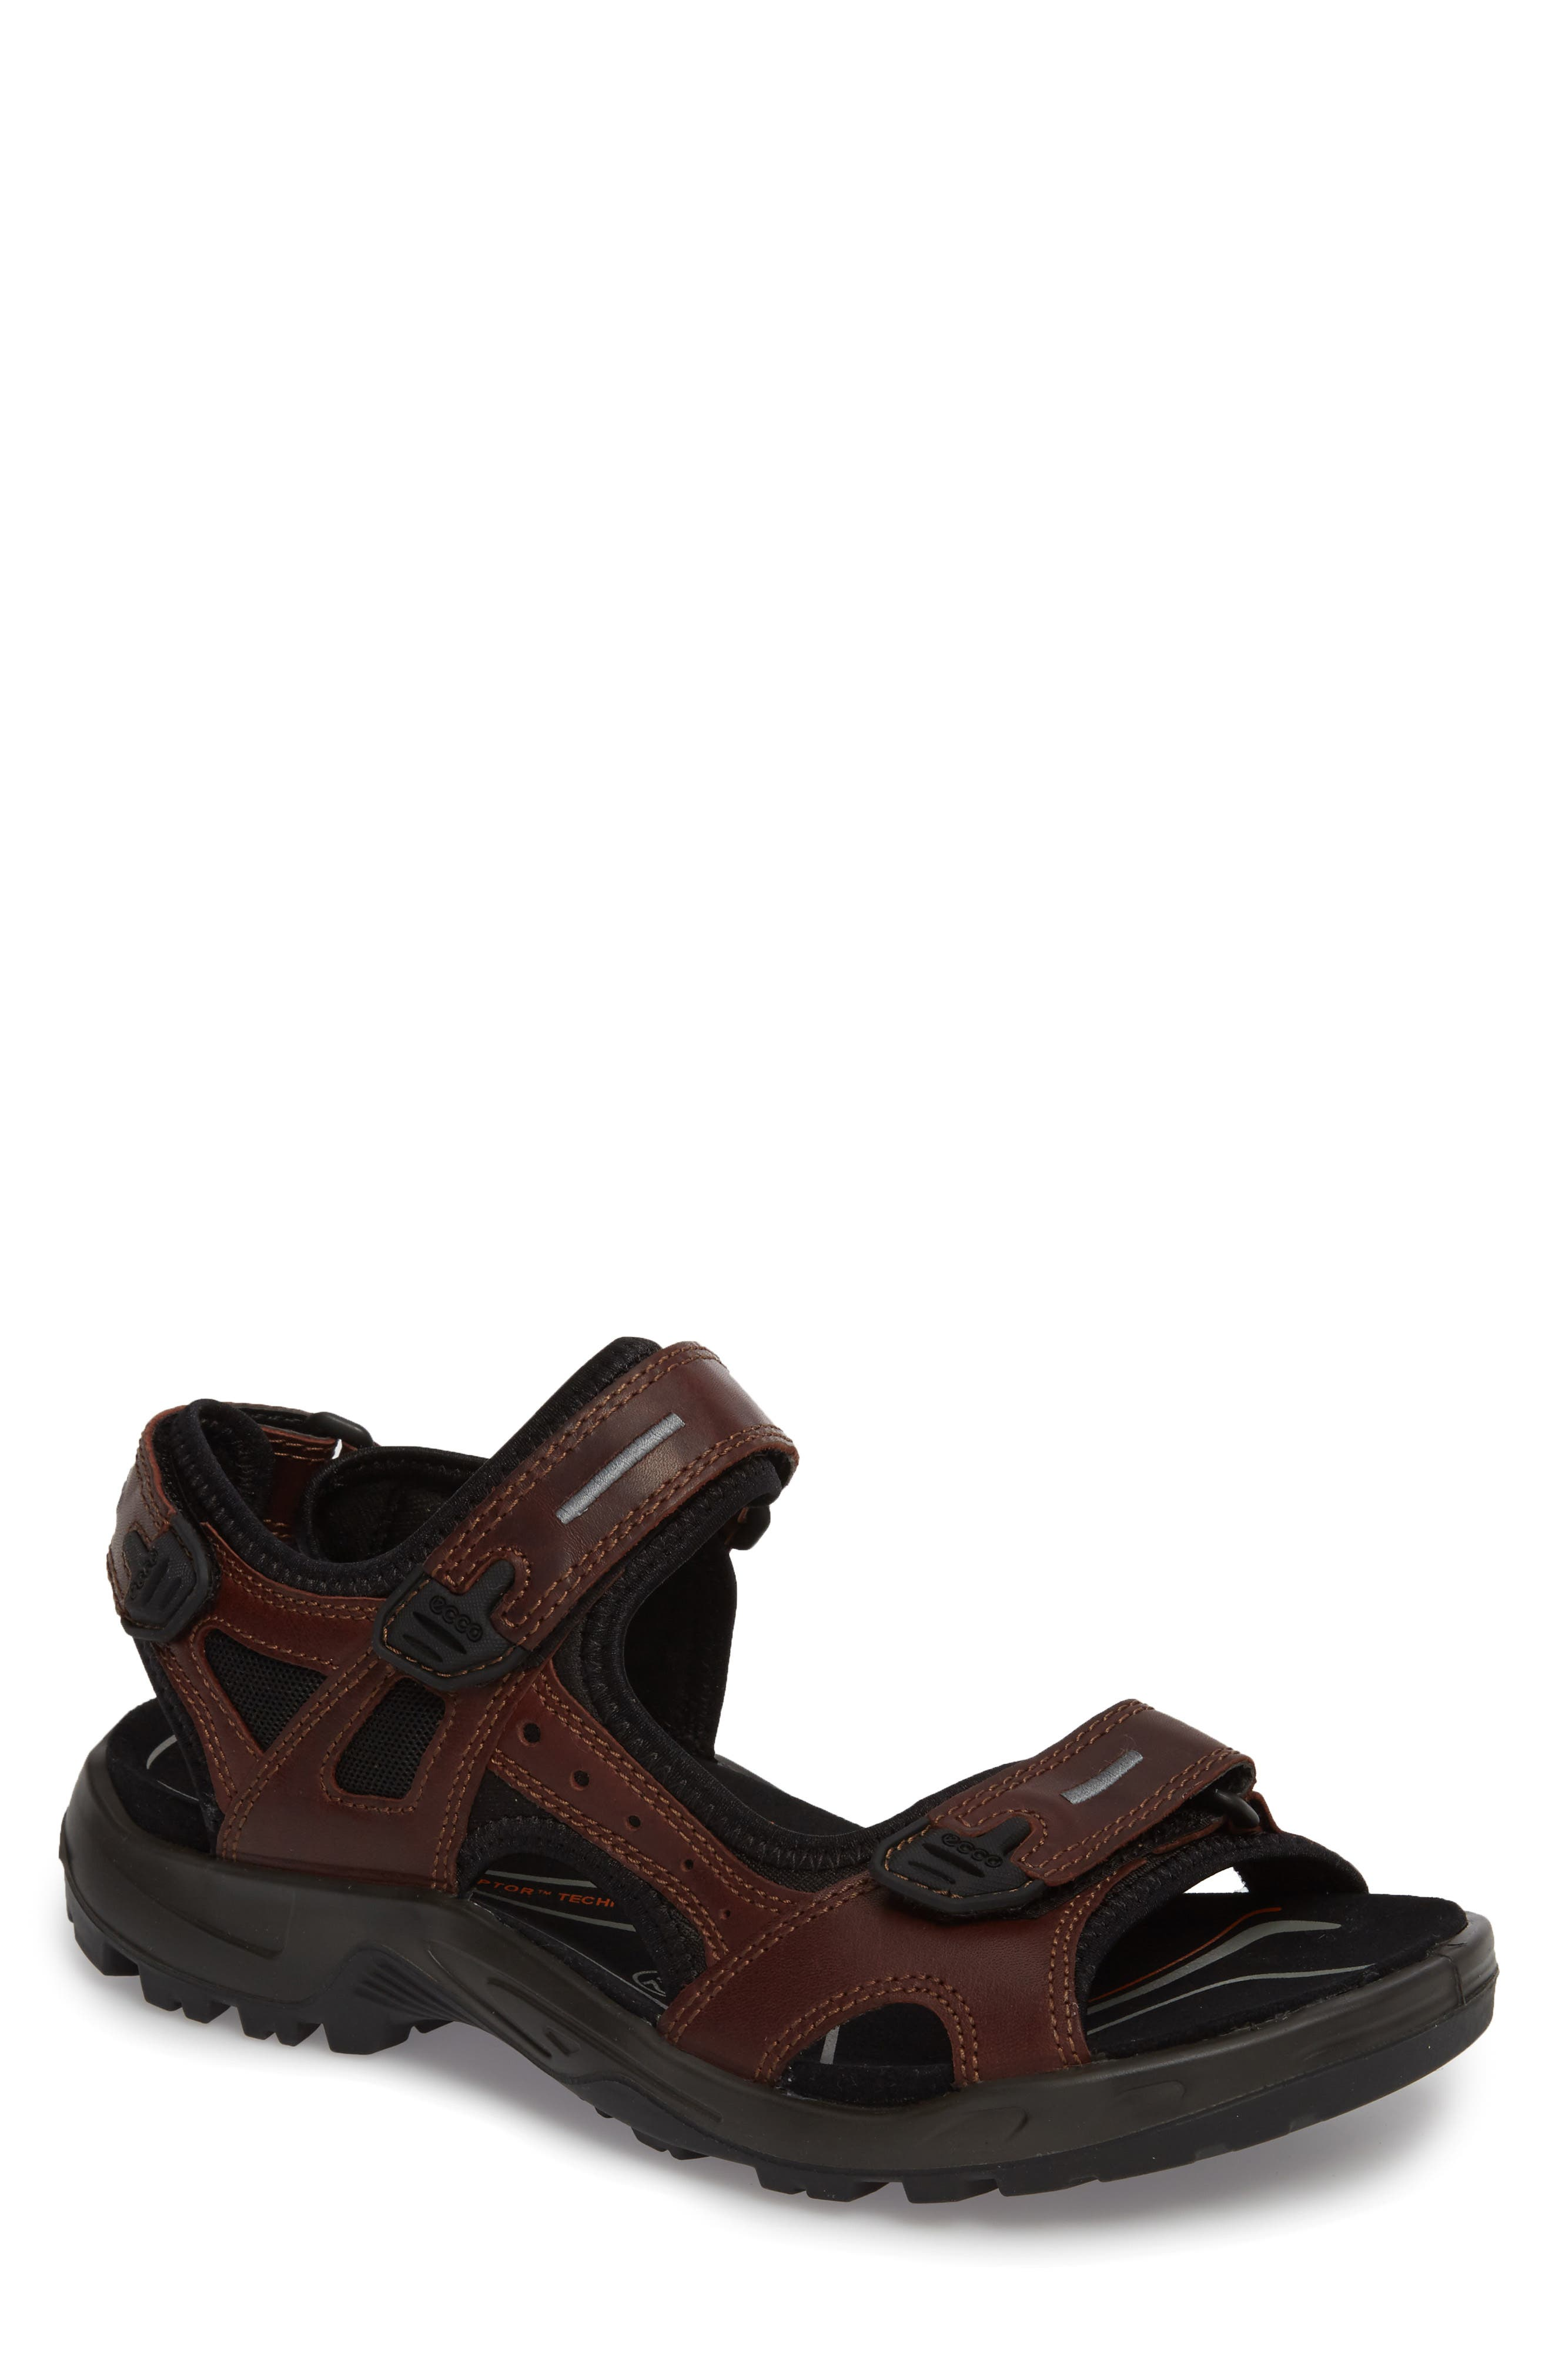 Offroad Sport Sandal,                             Main thumbnail 1, color,                             Brandy Leather